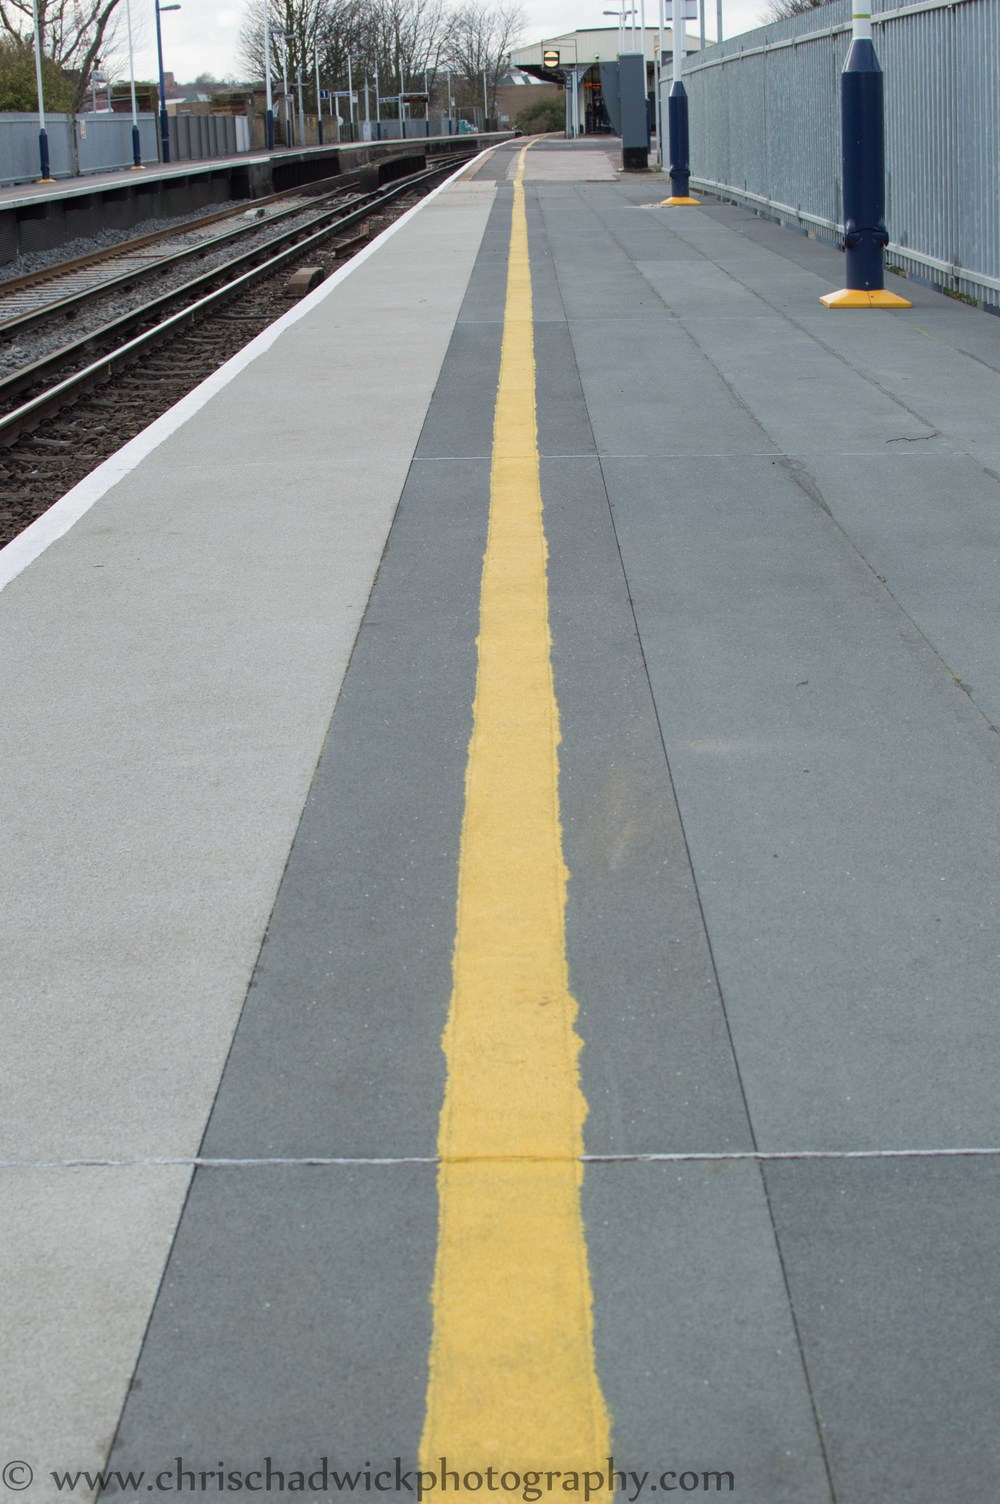 This image works well in portrait orientation as several of the components lend themselves to the upright shape. The yellow line, the track and the platform all extend almost vertically away from the camera.